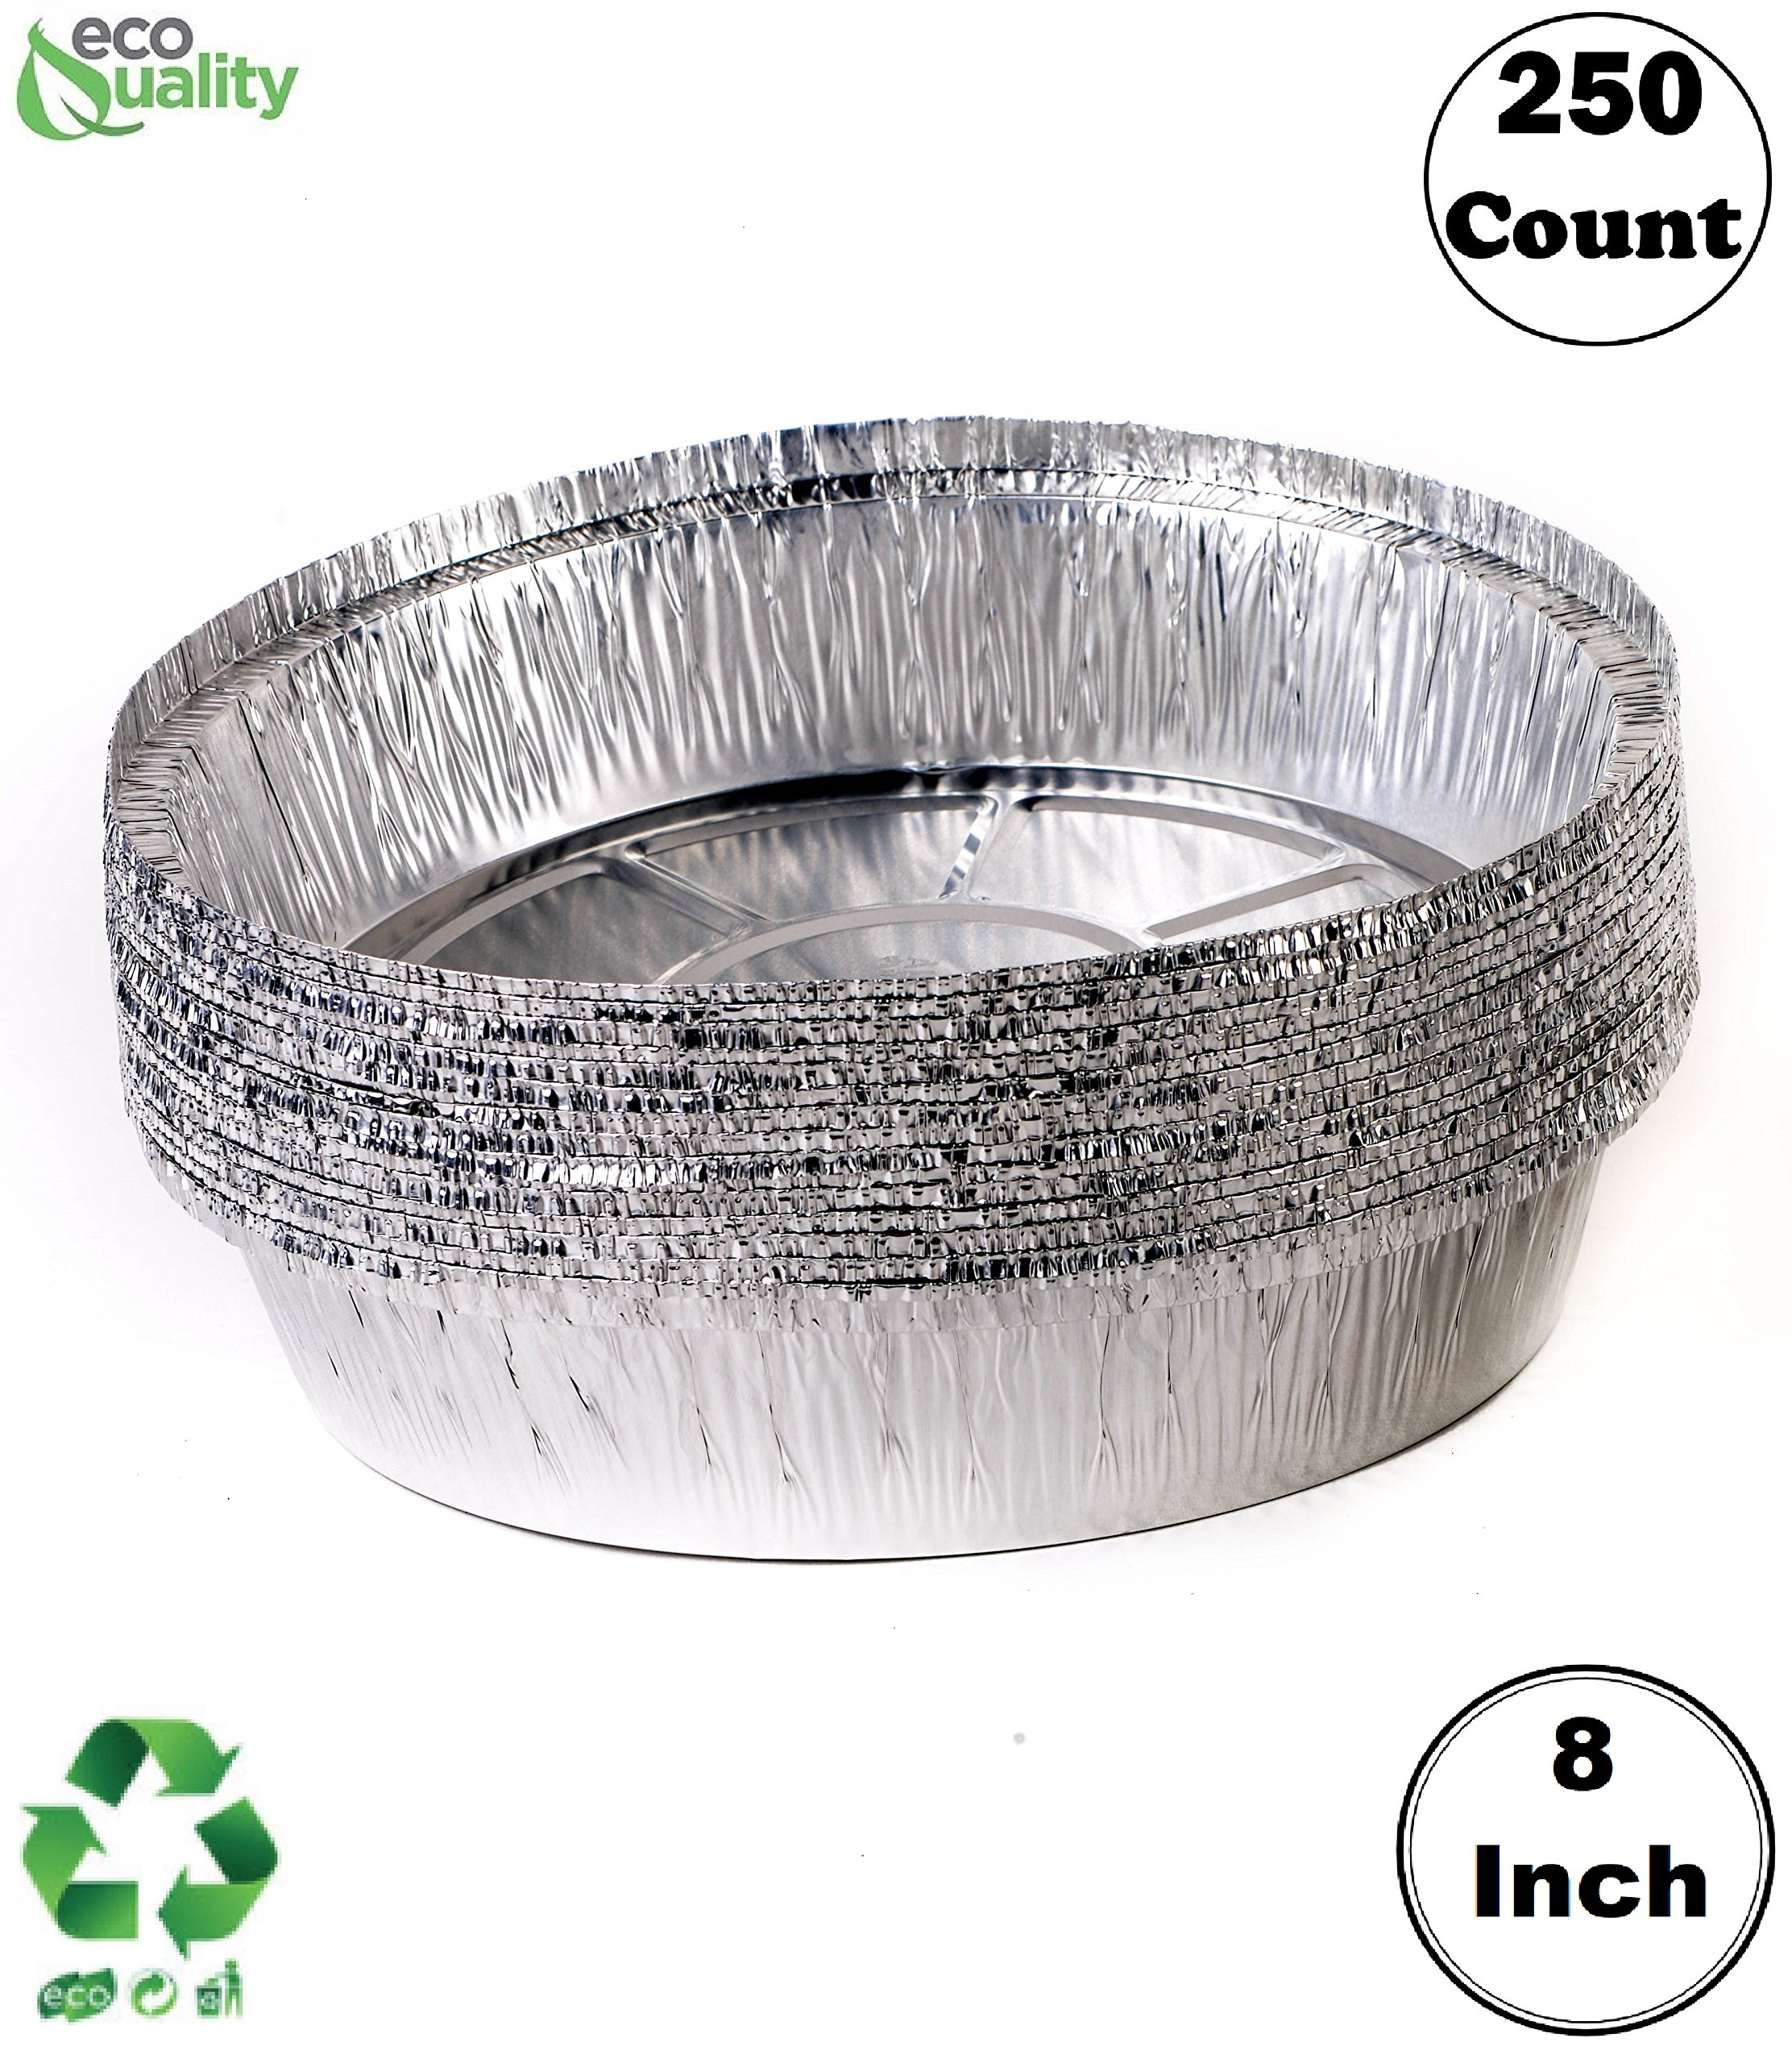 EcoQuality (250 Pack) - 8 Inch Disposable Round Aluminum Foil Take-Out Pans - Disposable Tin Containers, Perfect for Baking, Cooking, Catering, Parties, Restaurants (No Lids)